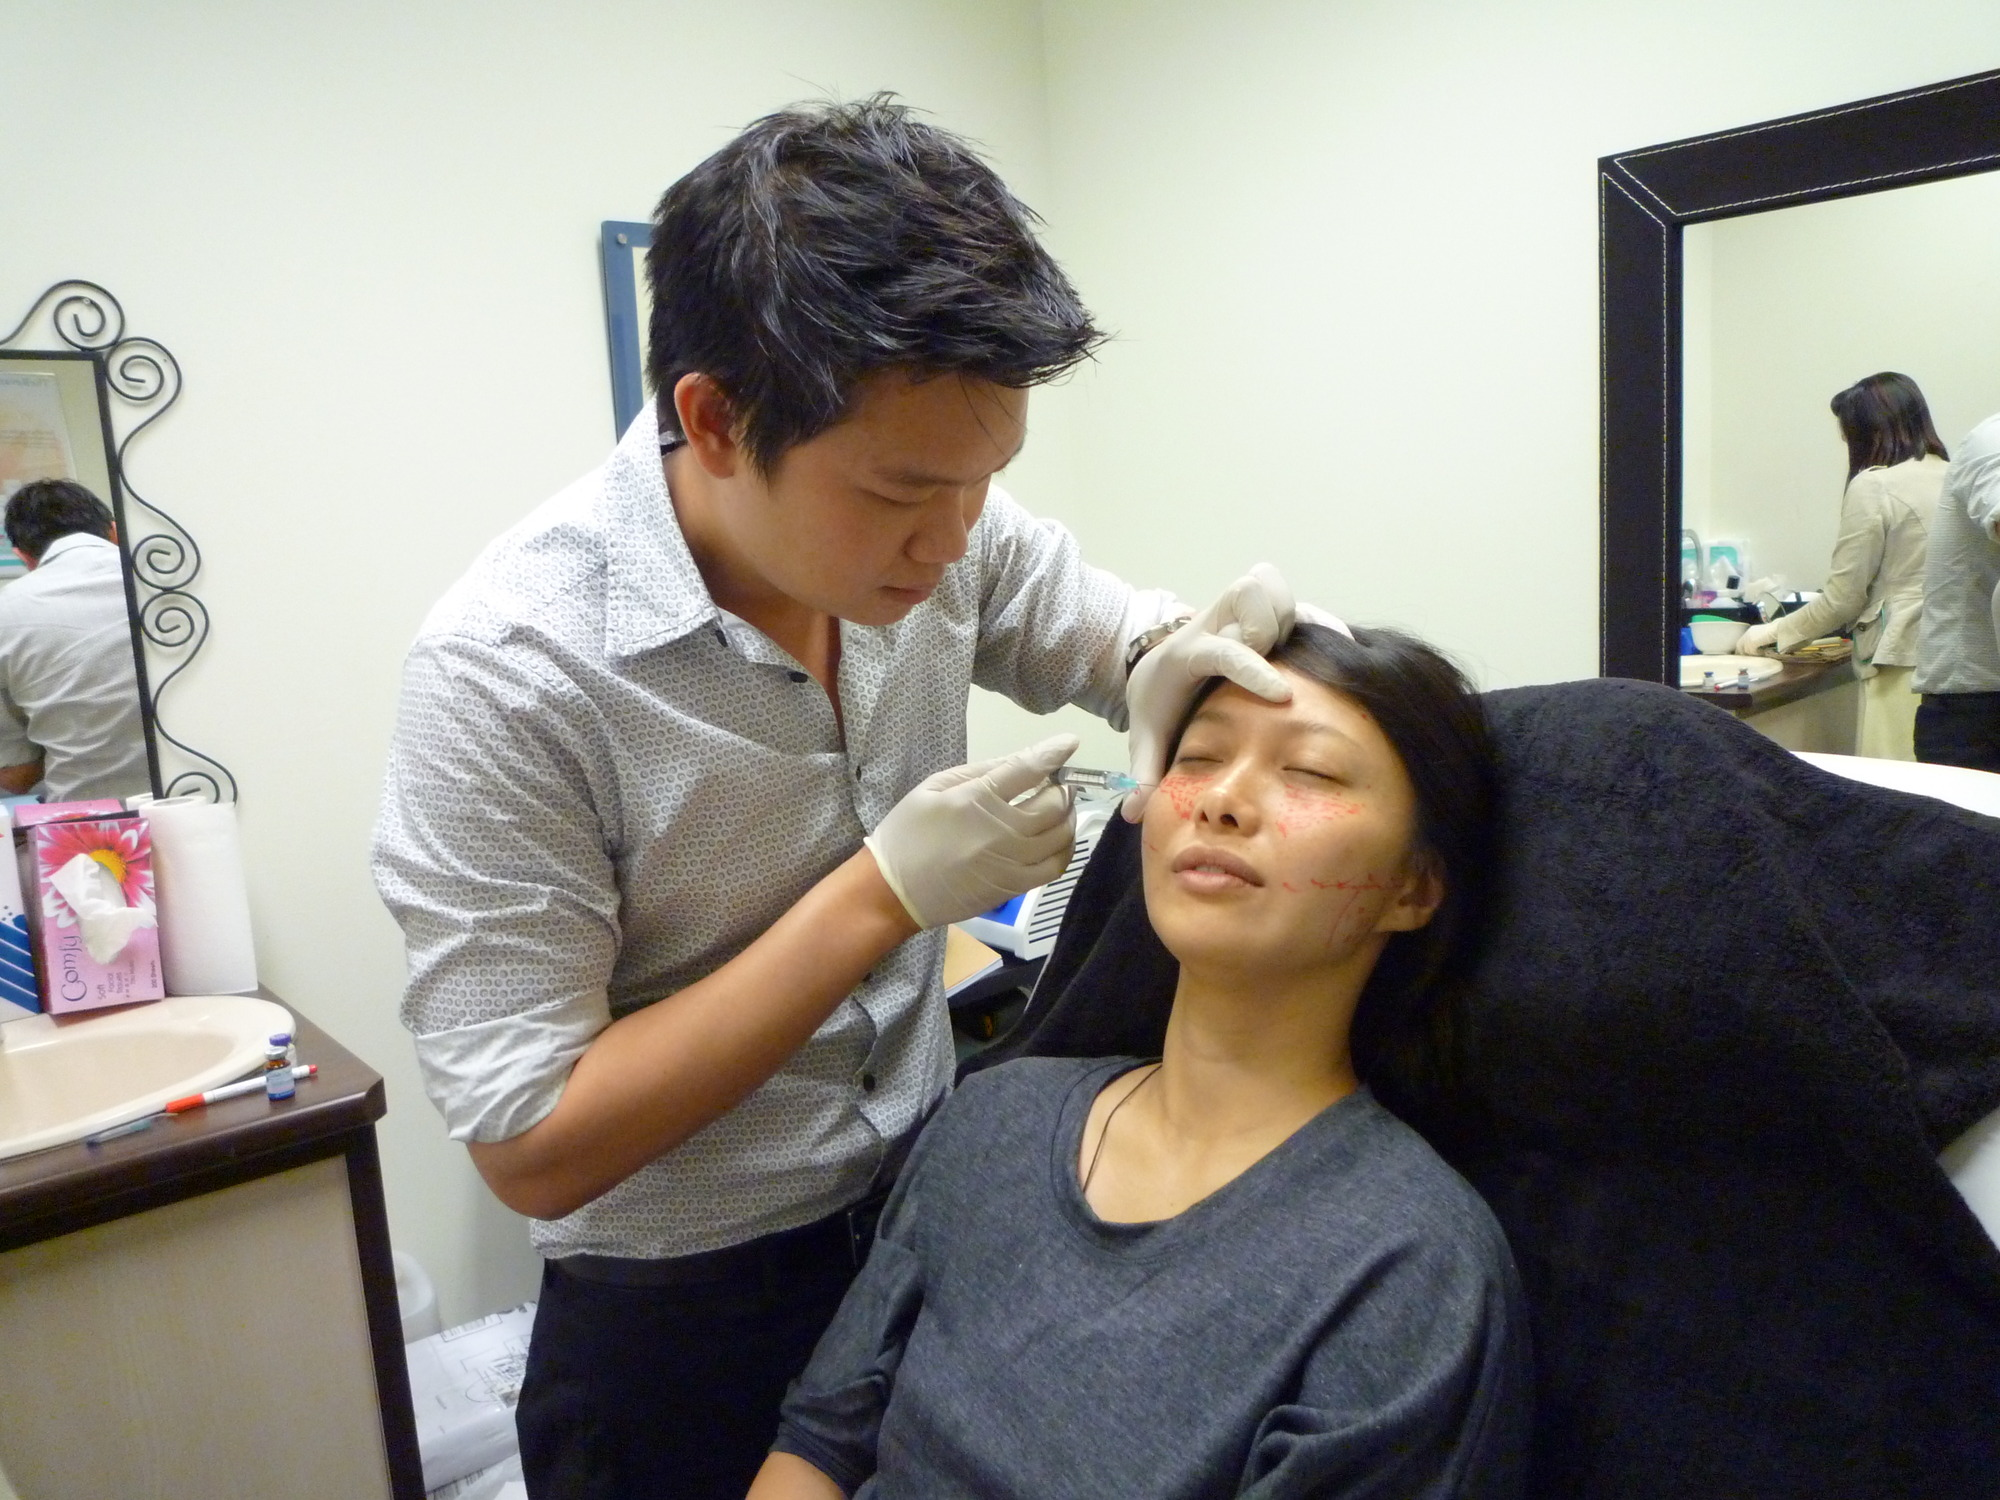 facial remodelling treatment with Dr Z